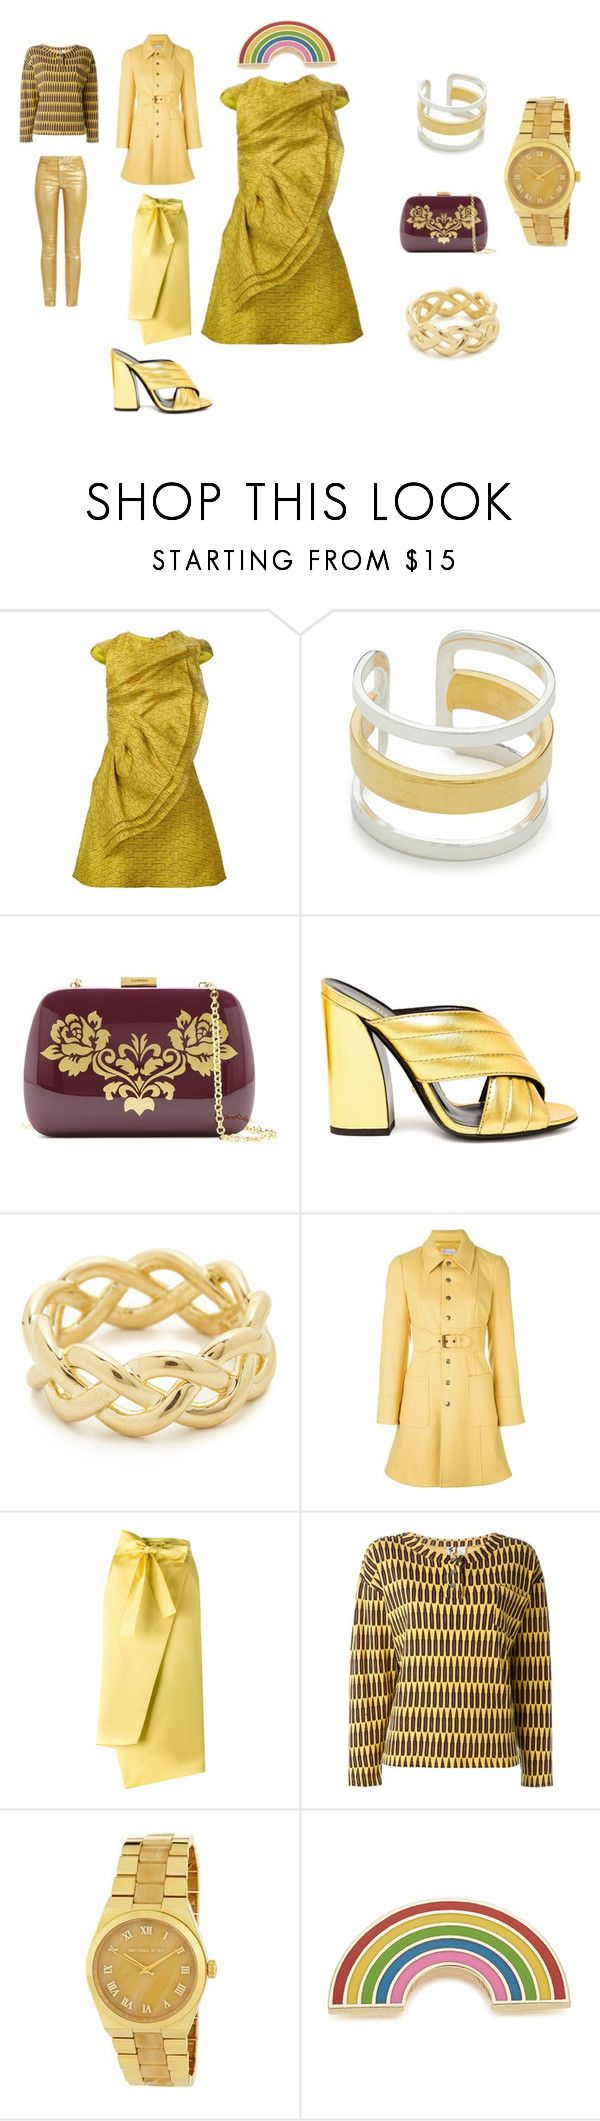 """looking awesome"" by emmamegan-5678 ❤ liked on Polyvore featuring Christian Siriano, Maya Magal, Serpui, Gucci, Soave Oro, RED Valentino, Rochas, Stephen Sprouse, MICHAEL Michael Kors and Georgia Perry"